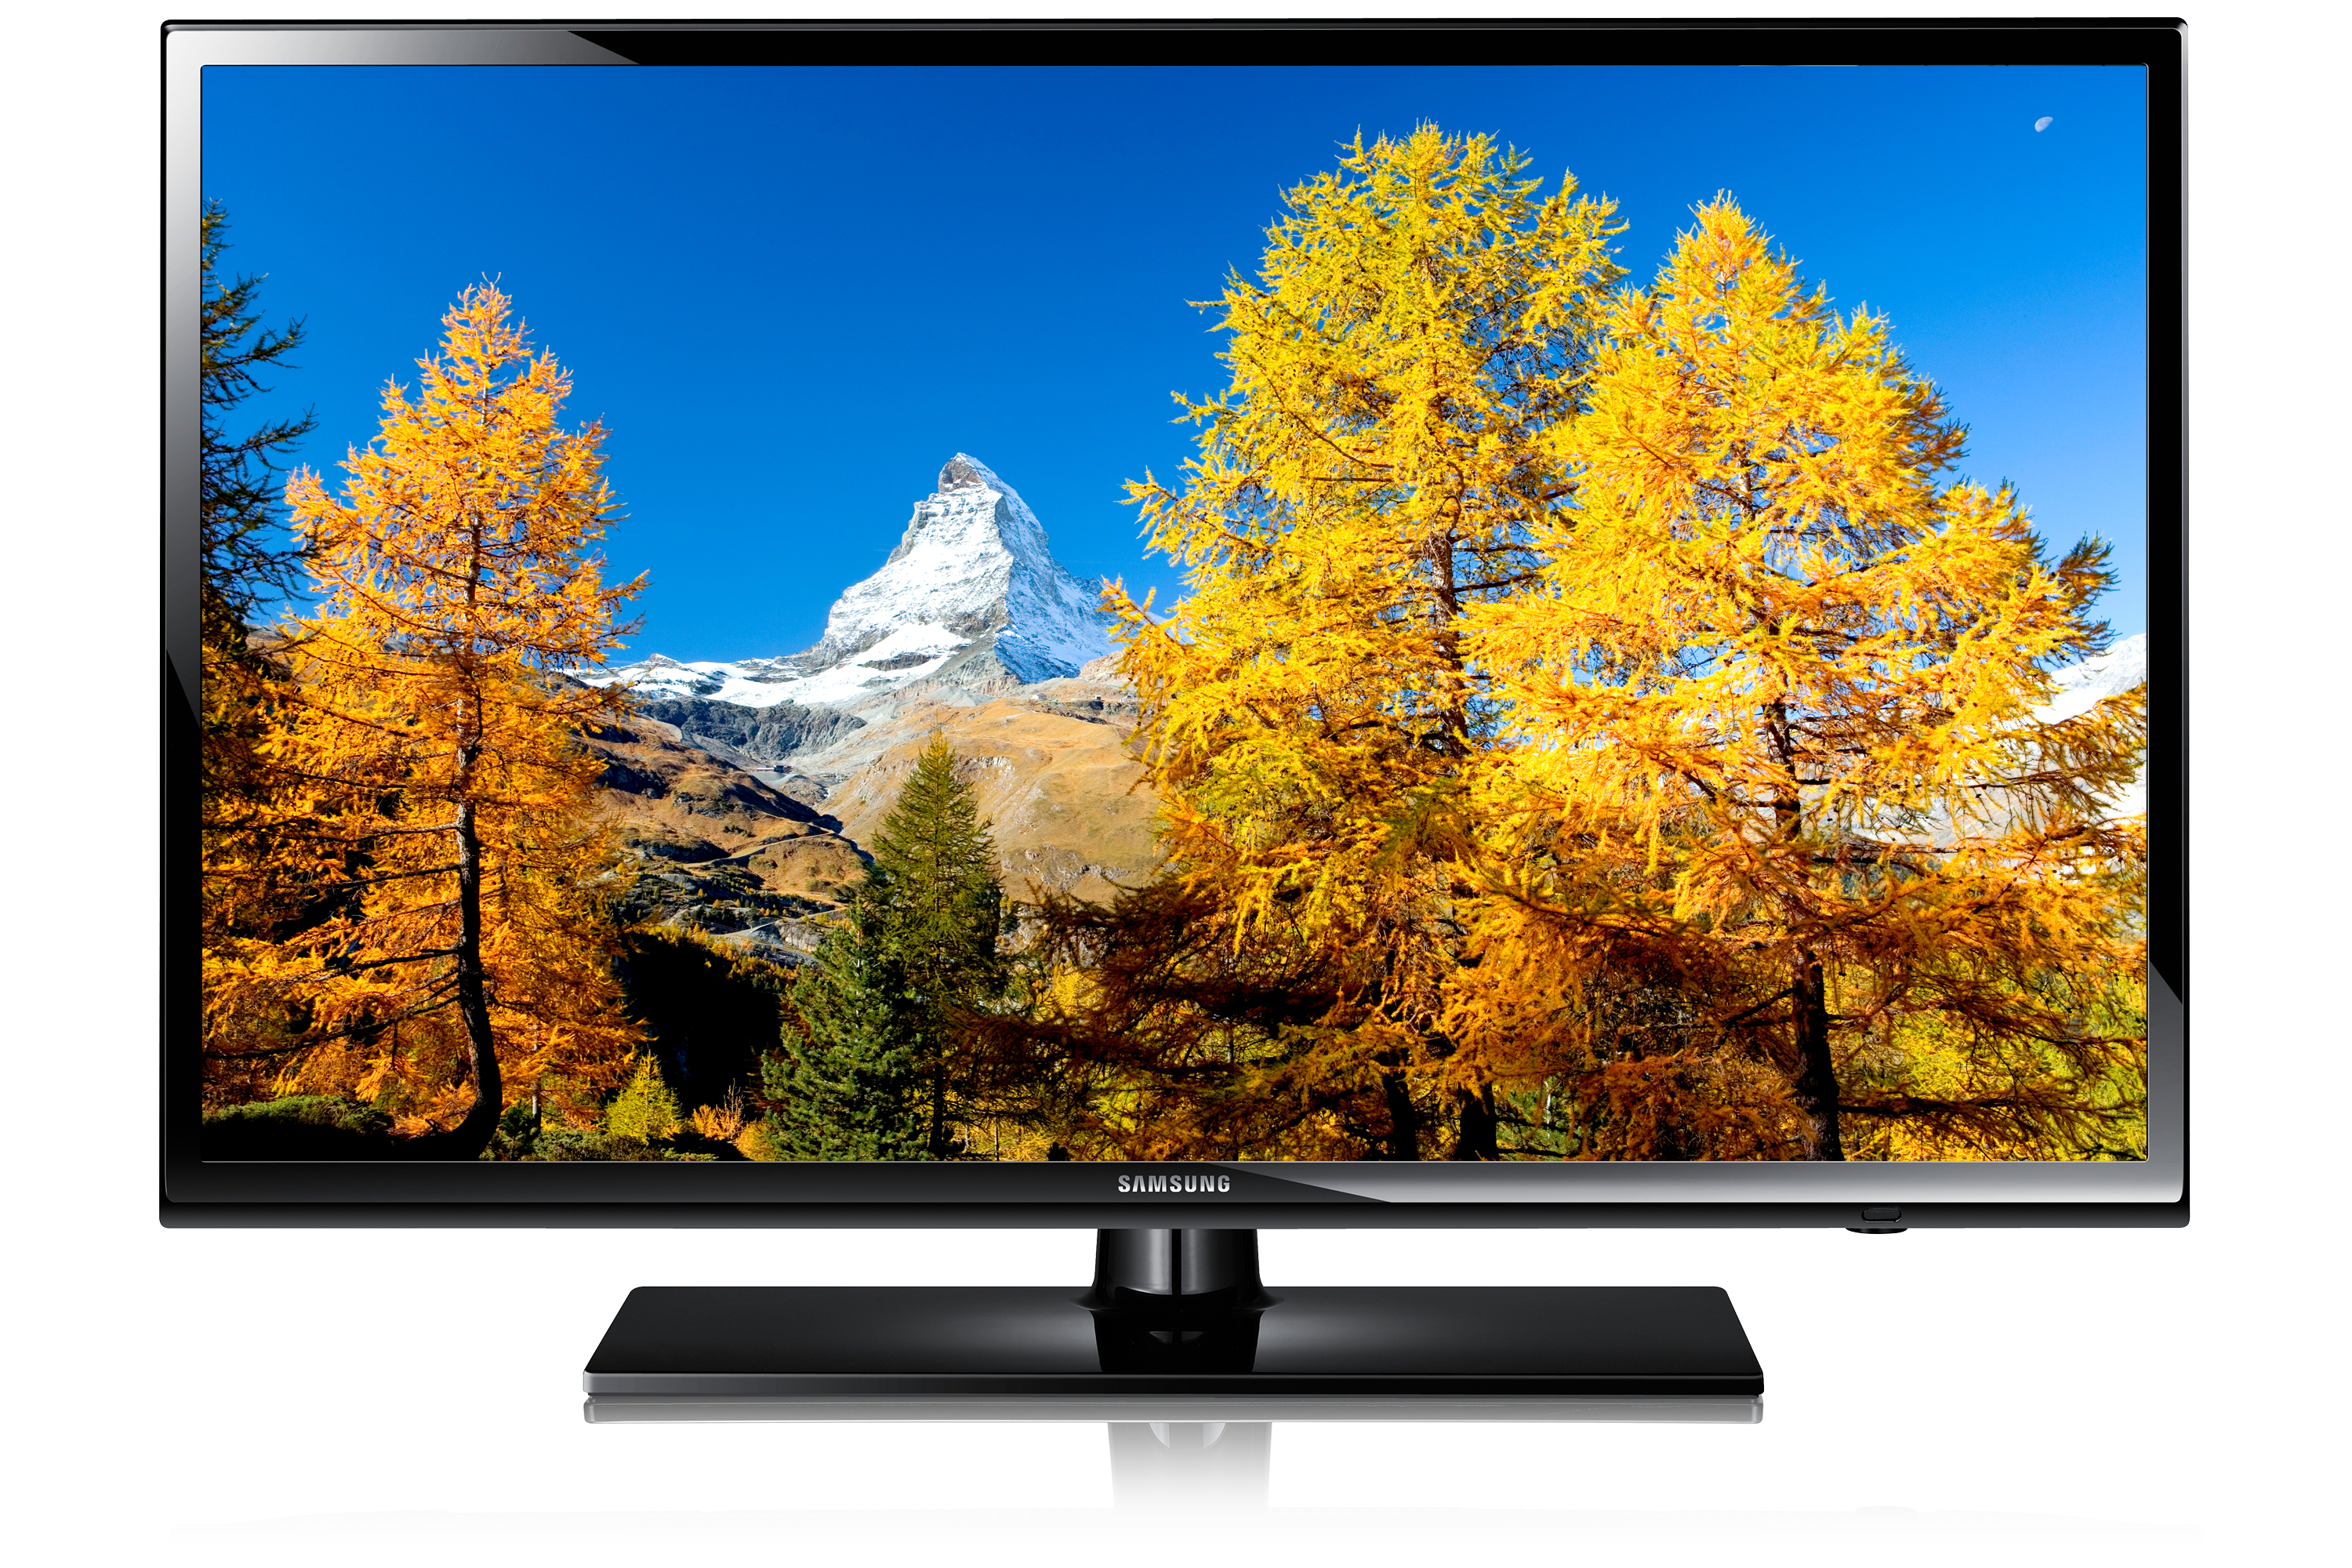 tv LED 50 samsung pictures 3000x2000